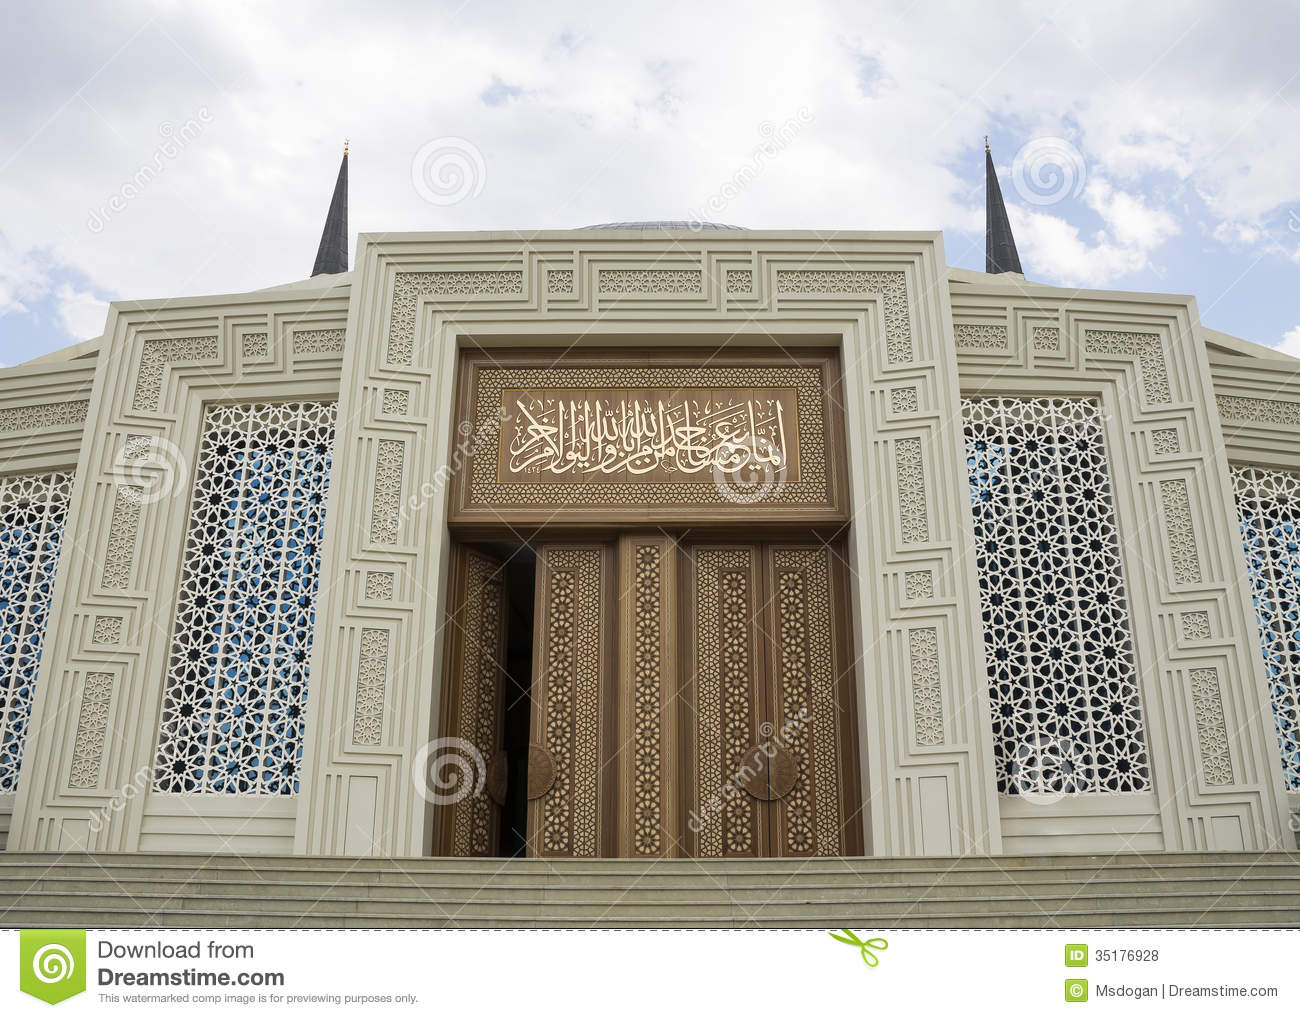 Ahmet Hamdi Akseki Mosque Stock Photo.